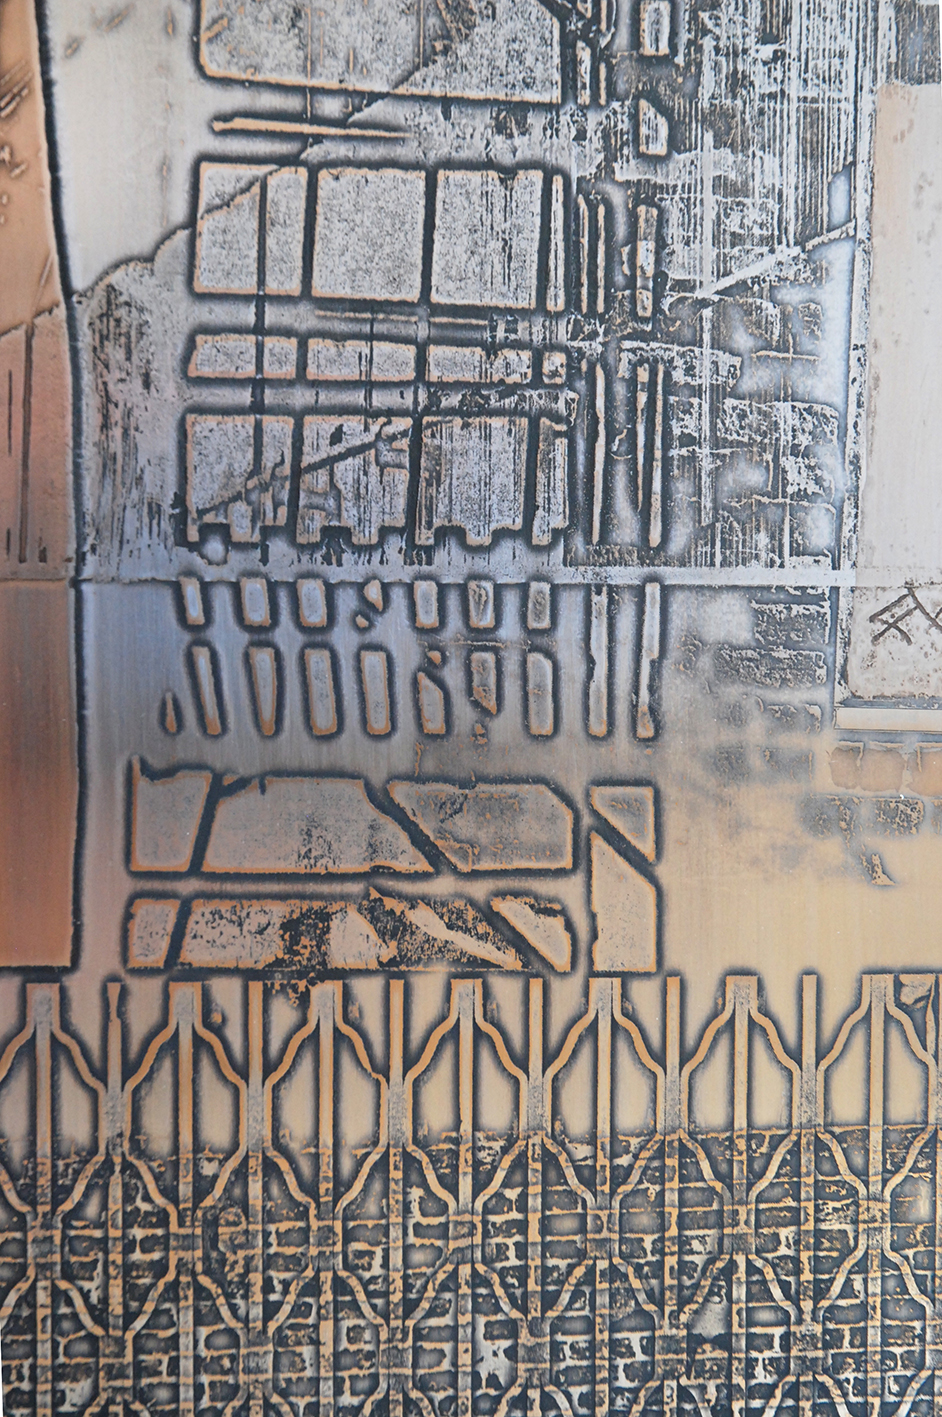 Architectural metal wall piece by Rebecca Gouldson Metal Art www.rebeccagouldson.co.uk